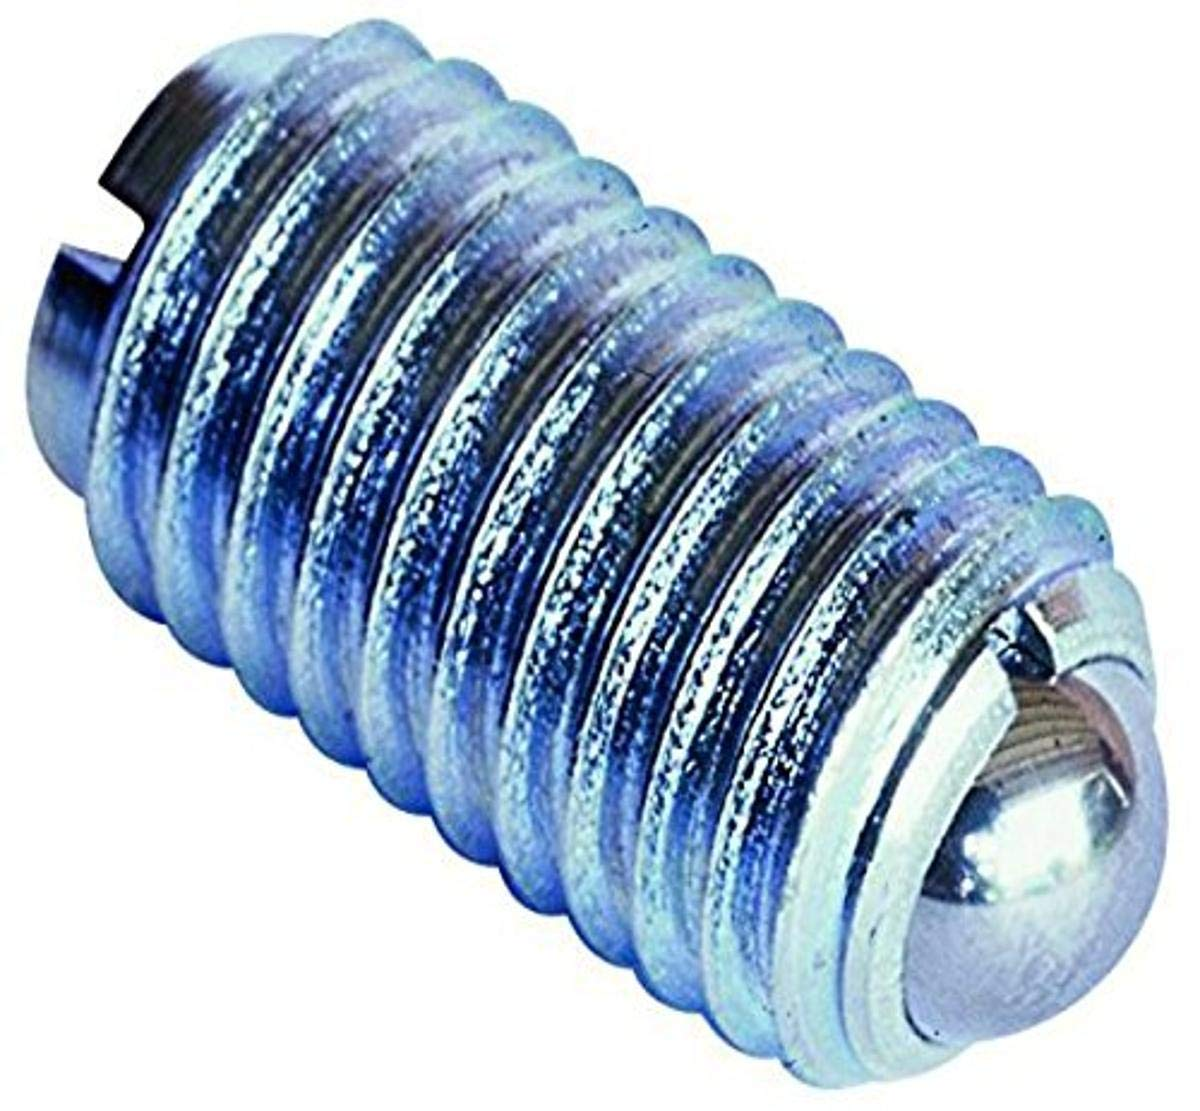 TE-CO 52911X Plunger Ball Industry No. 1 We OFFer at cheap prices with Out of 5 16-18 Lock Pack